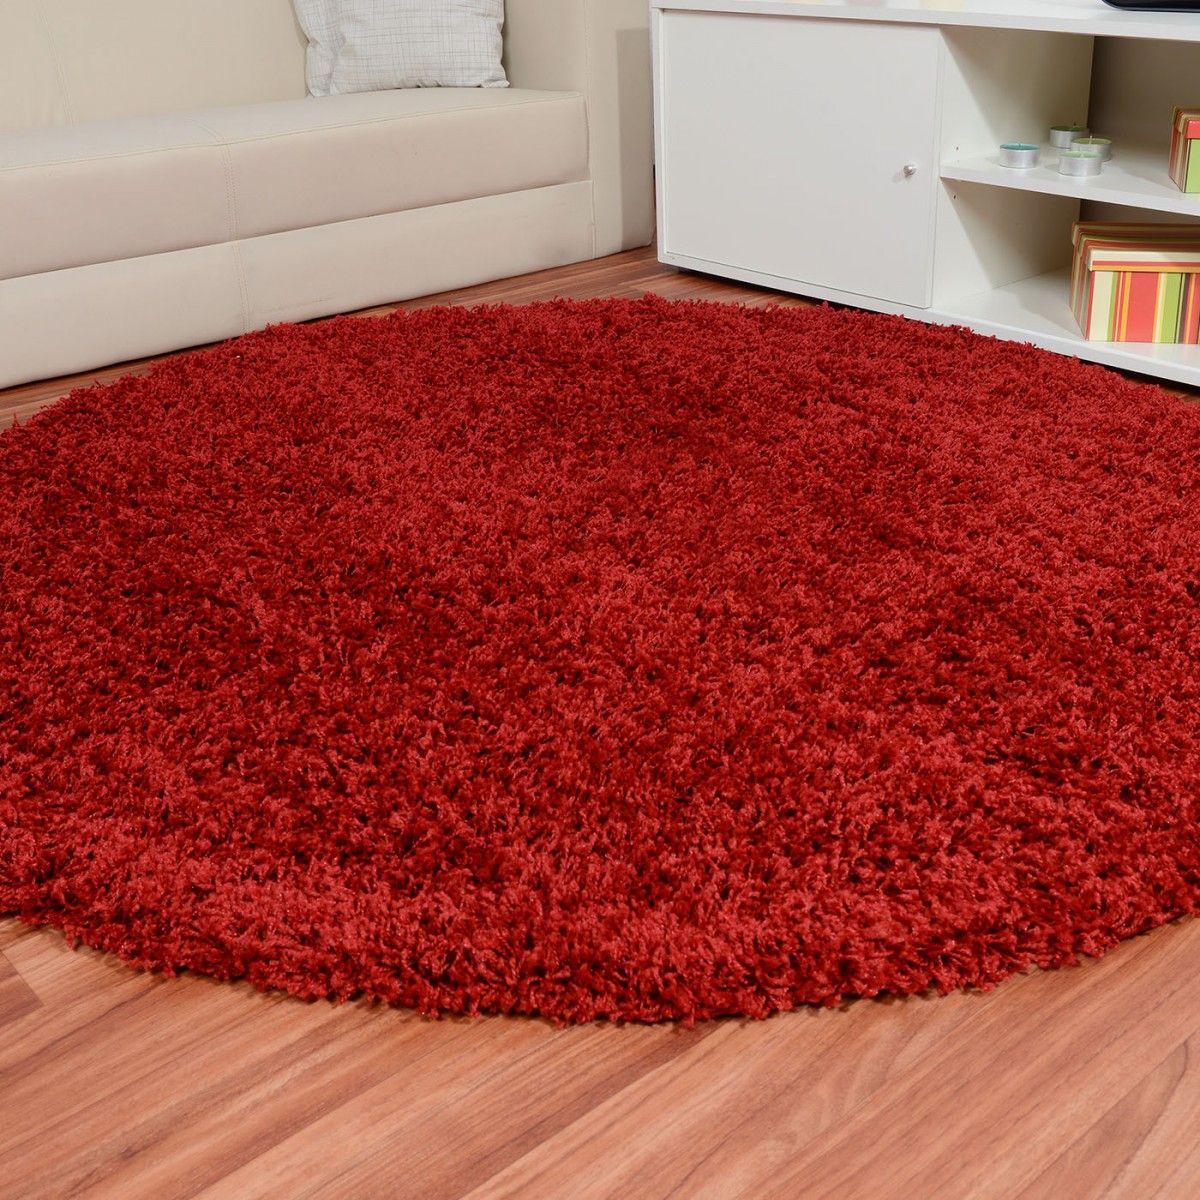 Shaggy Teppich Luxury Shaggy Hochflor Teppich Good Super Soft Shaggy Hochflor